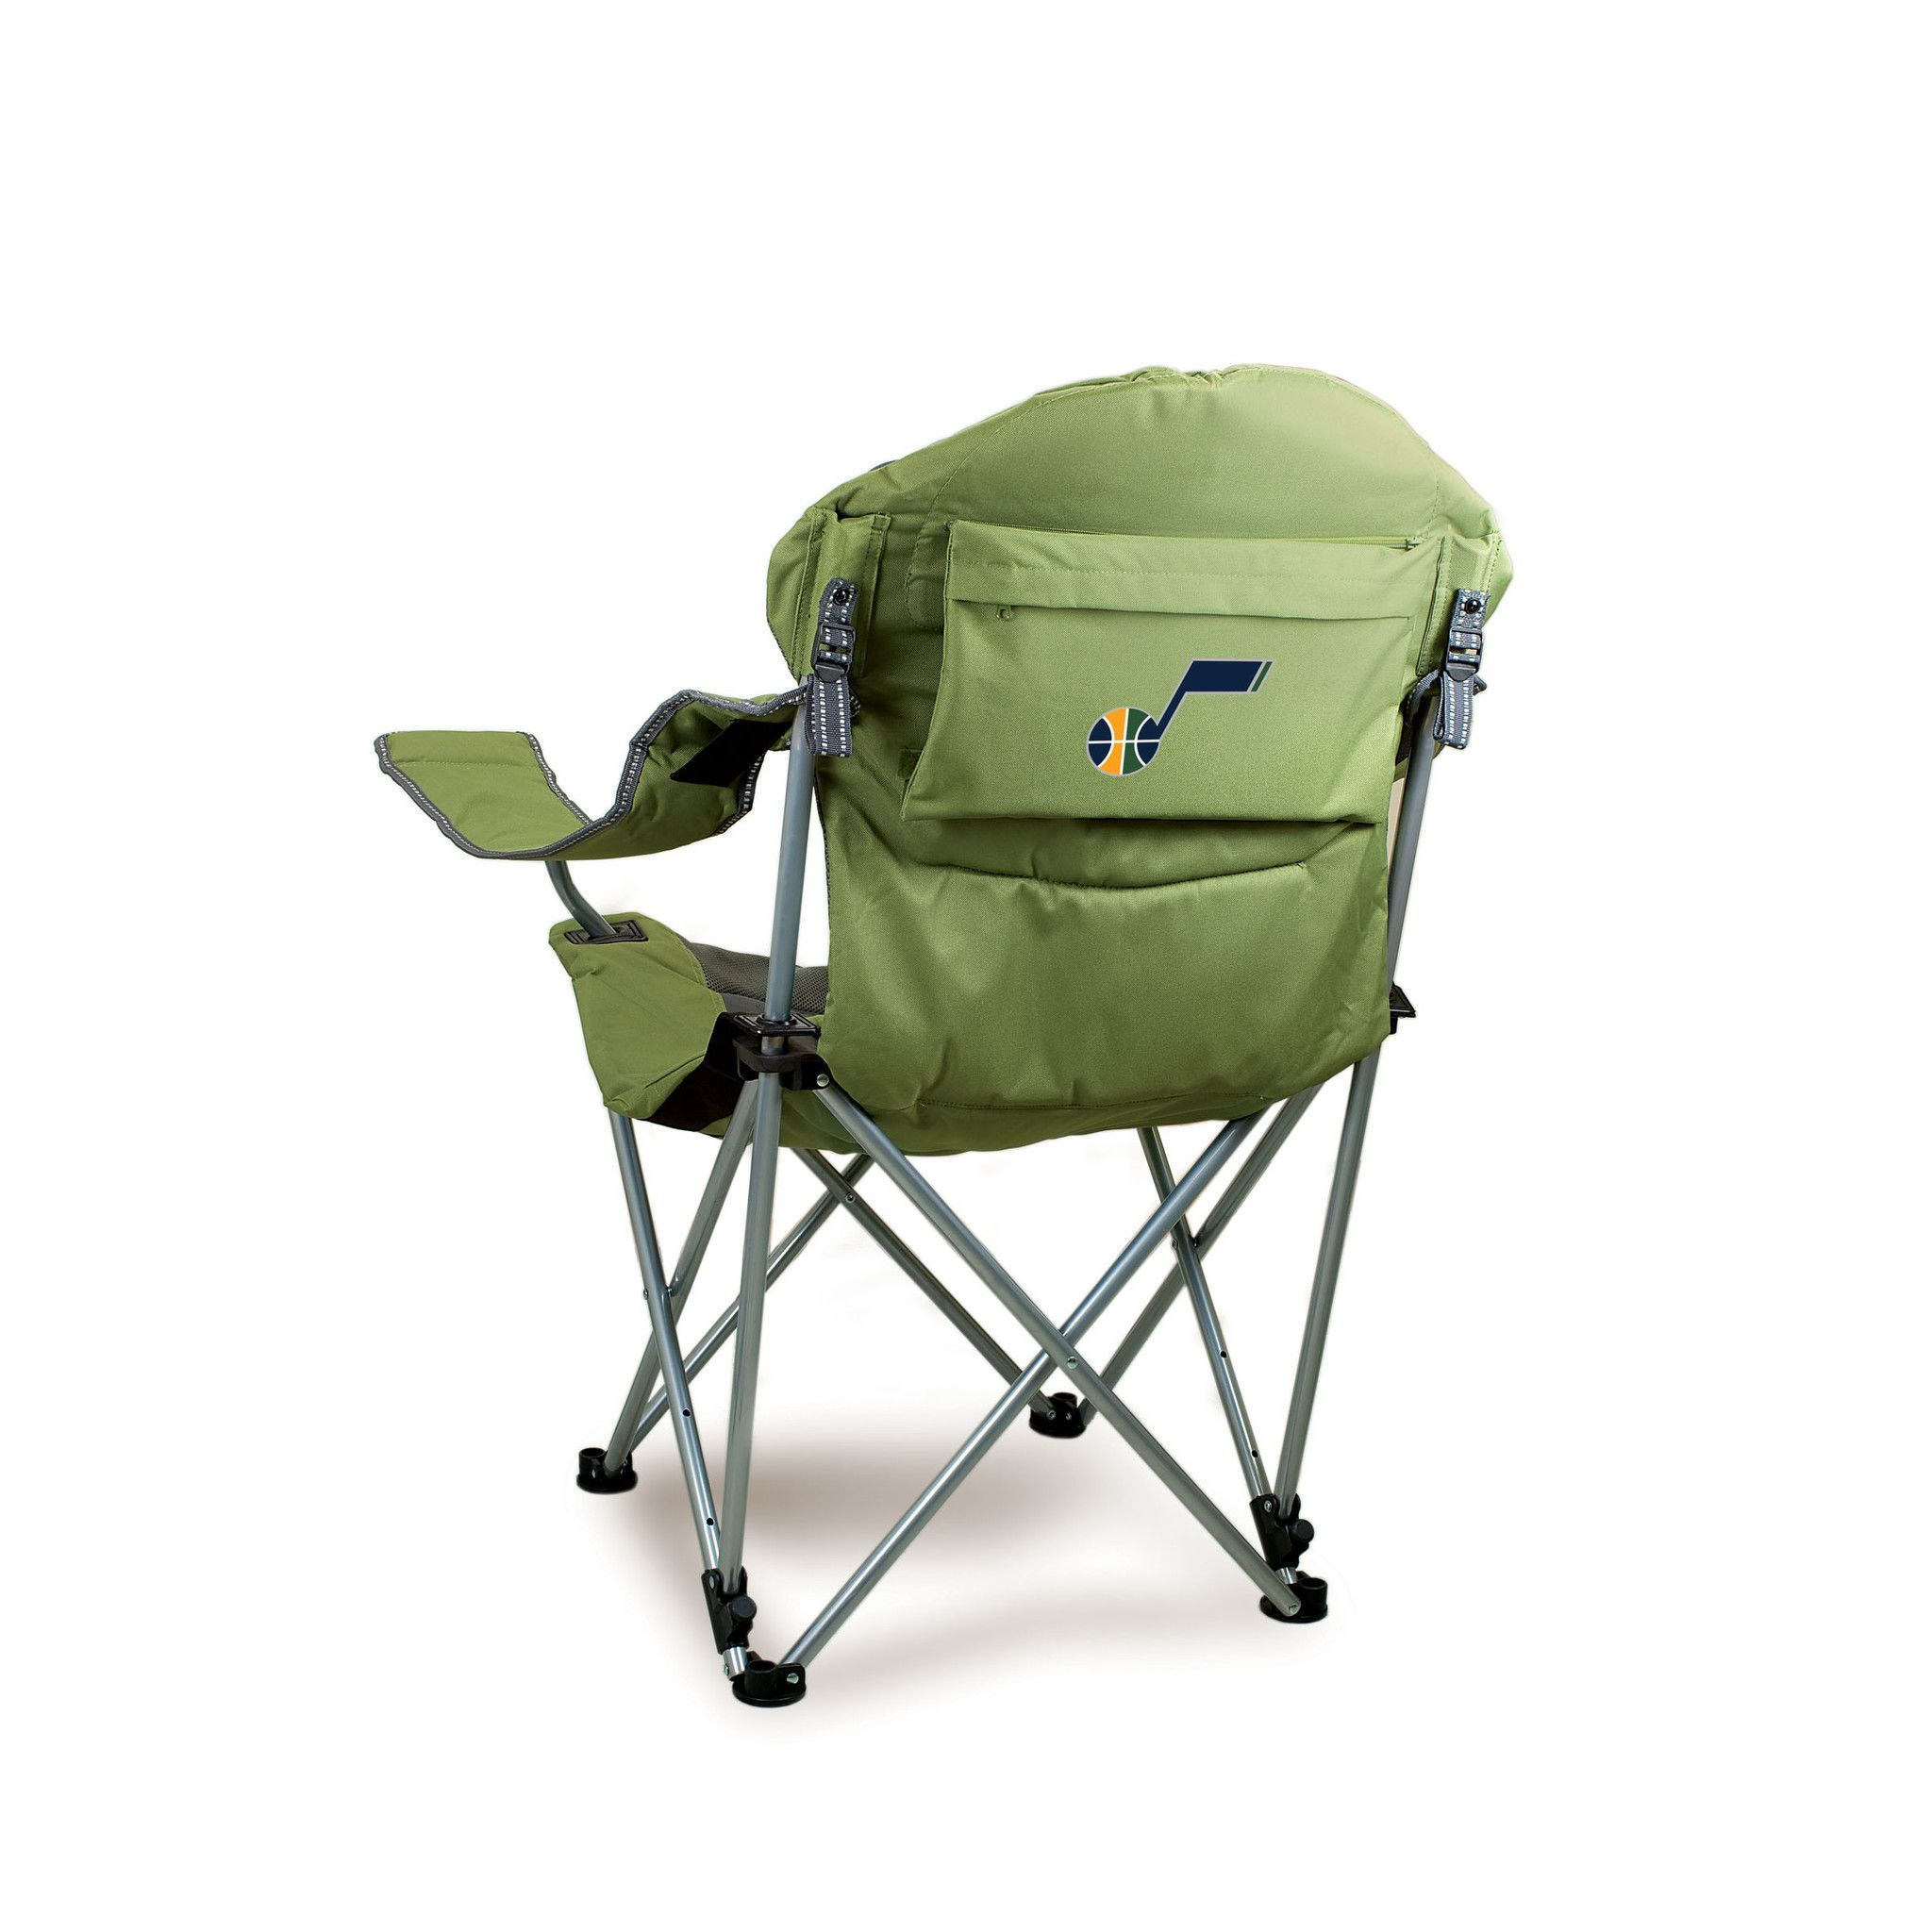 Reclining Camp Chair Utah Jazz Camping chairs, Egg